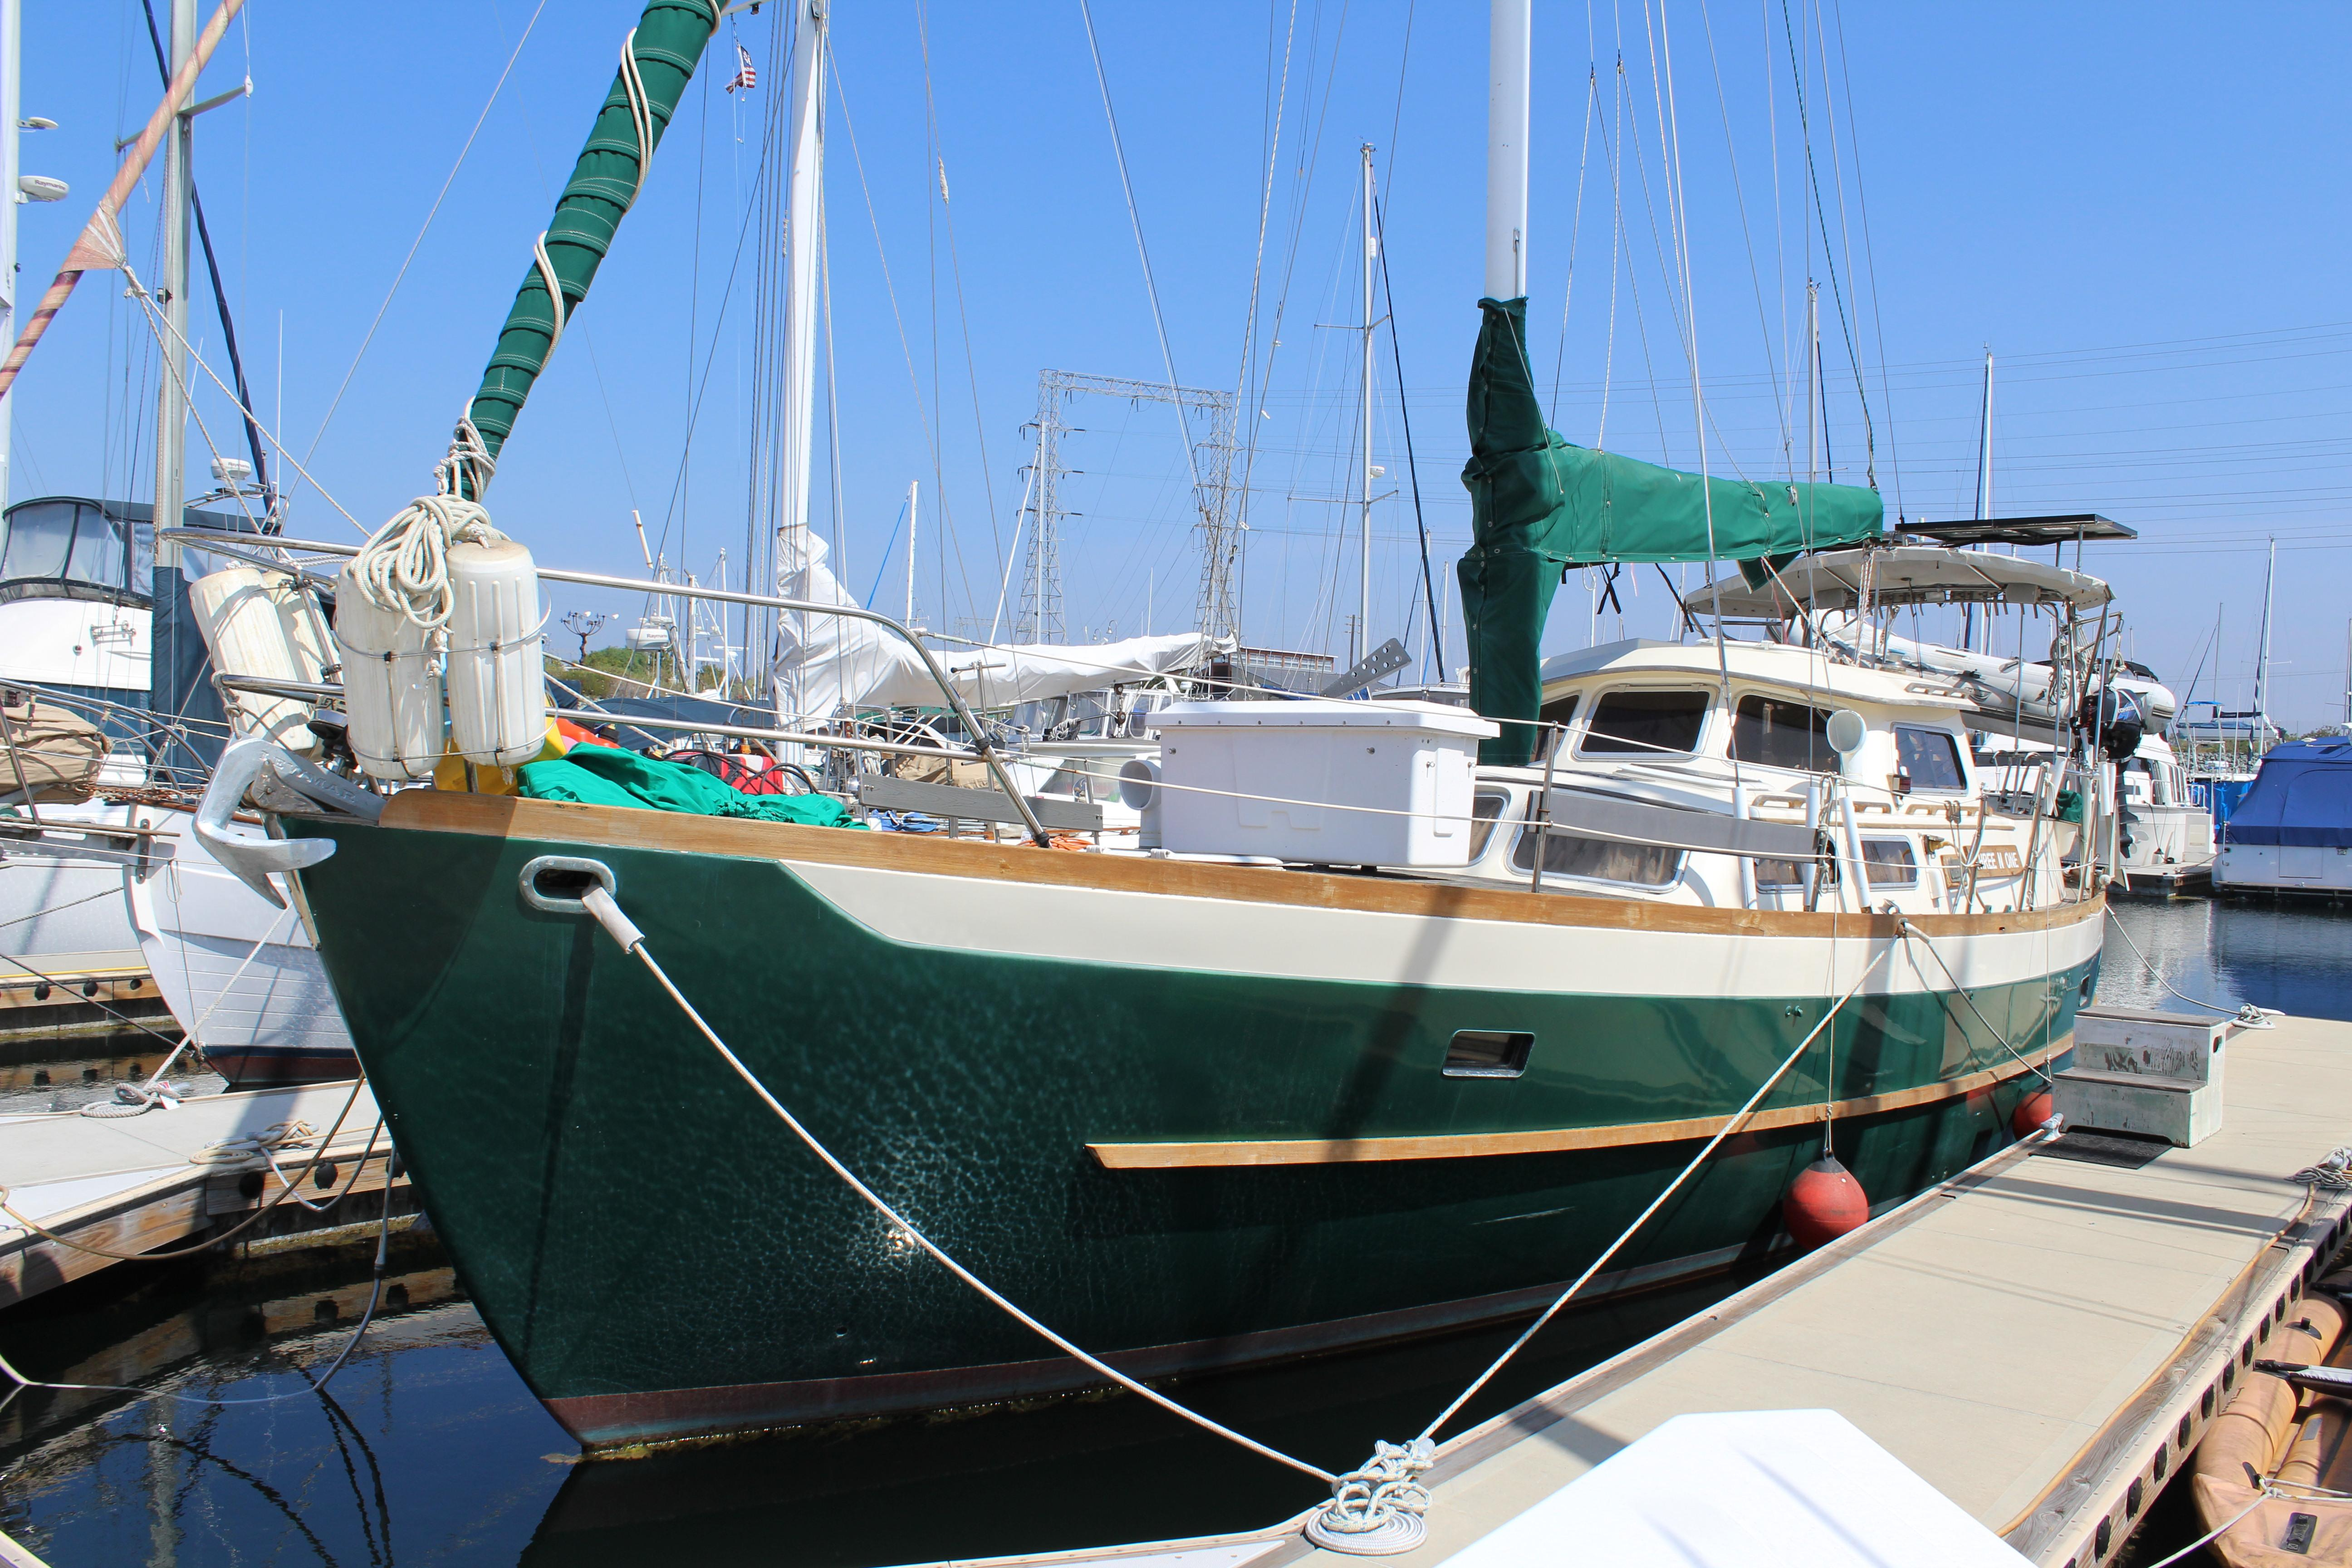 1984 Cheoy Lee 43 Sail Boat For Sale Www Yachtworld Com